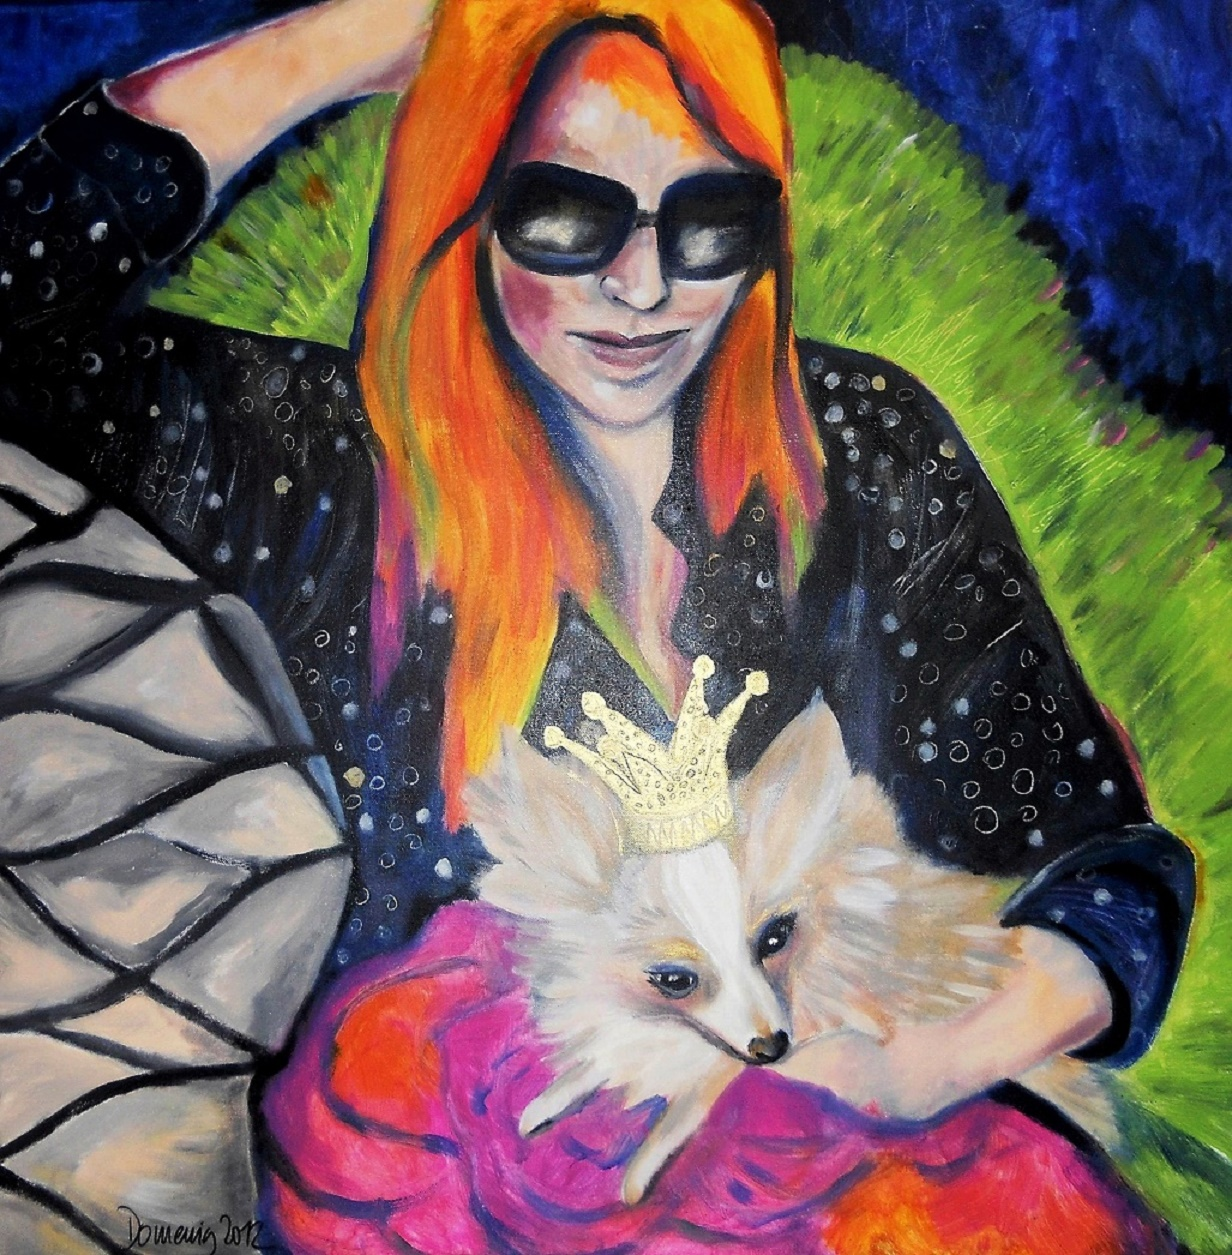 Gabi Domenig.Vanessa and her Chihuahua princess. 80x80cm.jpg